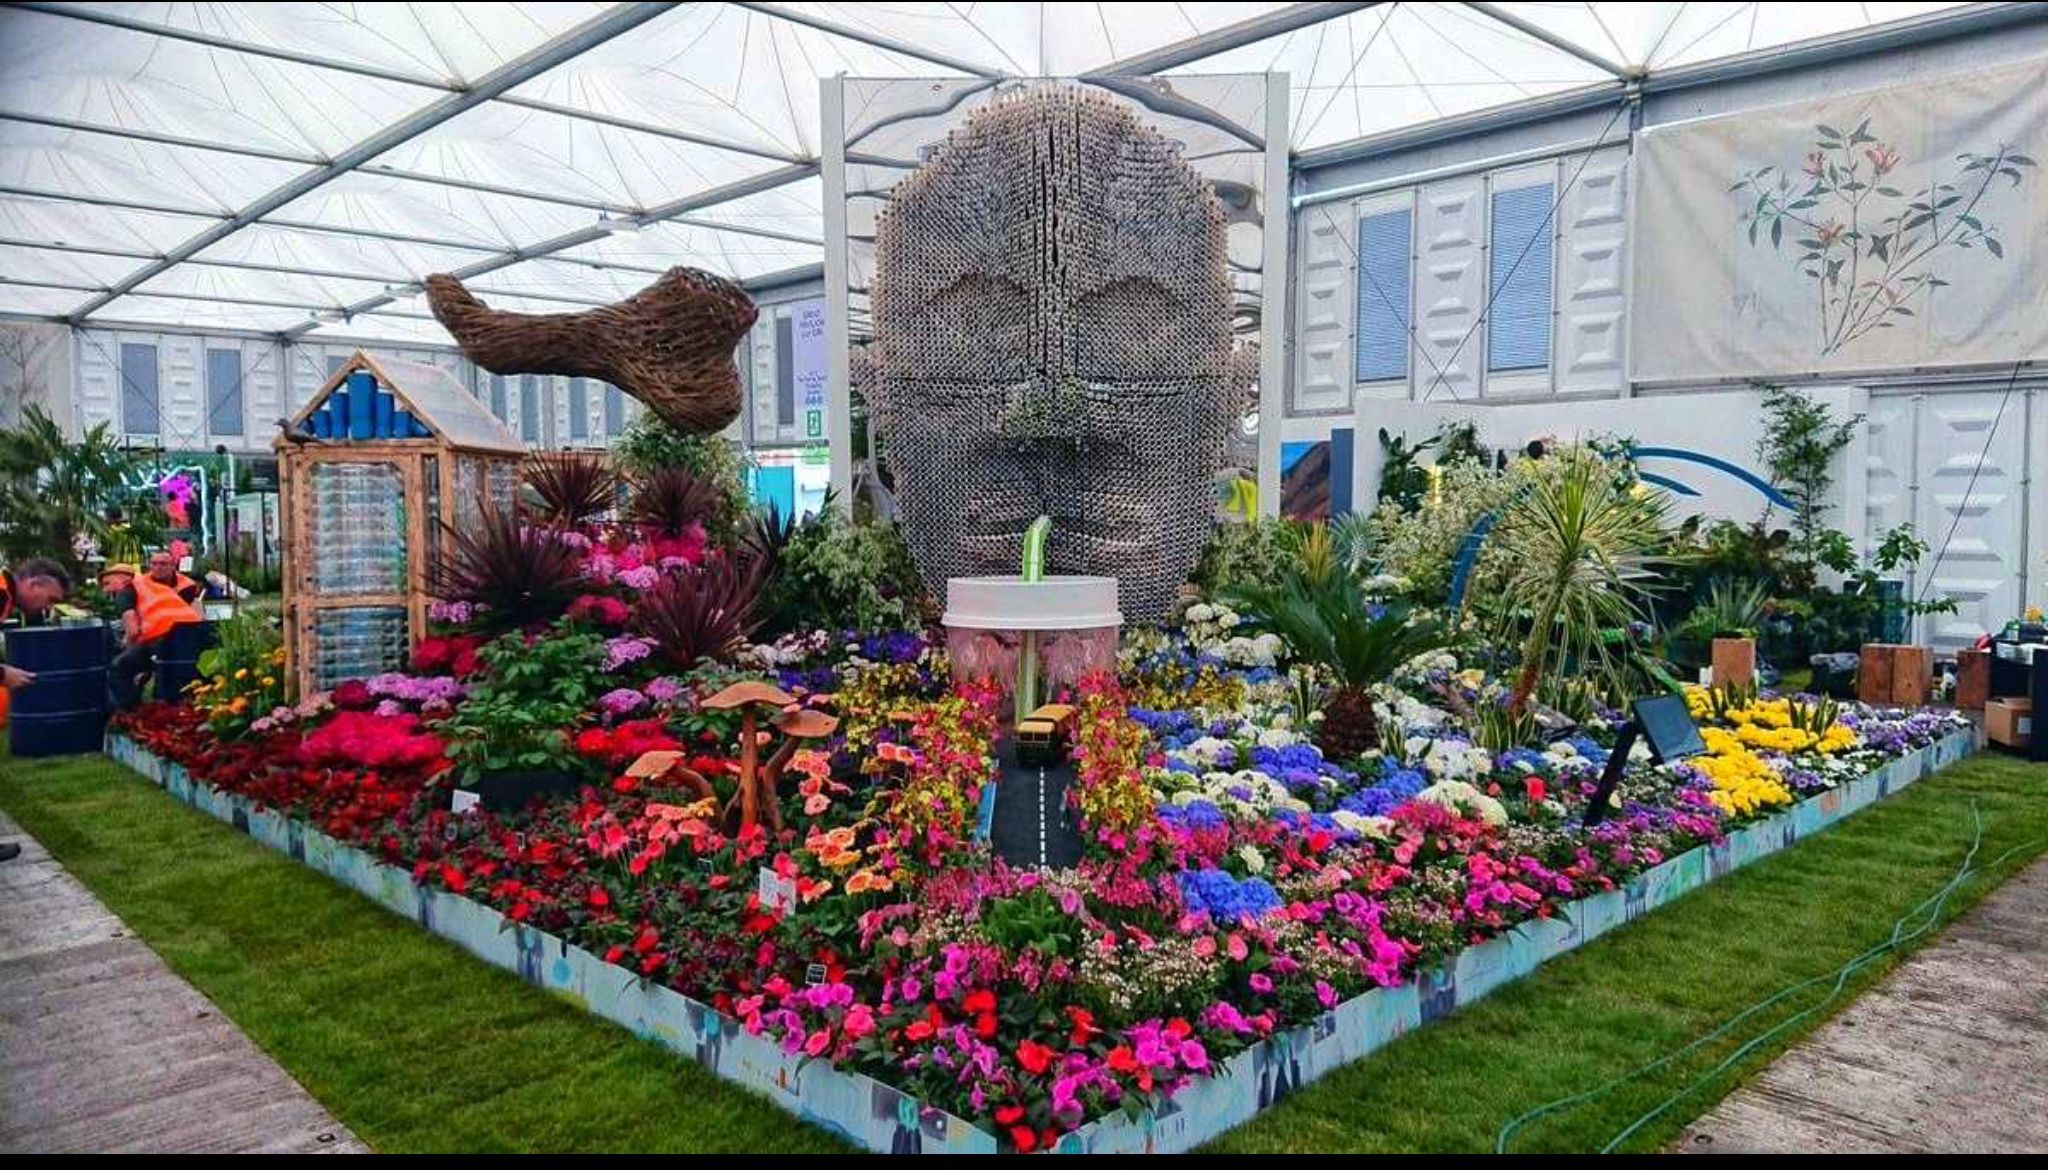 The 2019 Birmingham entry to the Royal Chelsea flower show